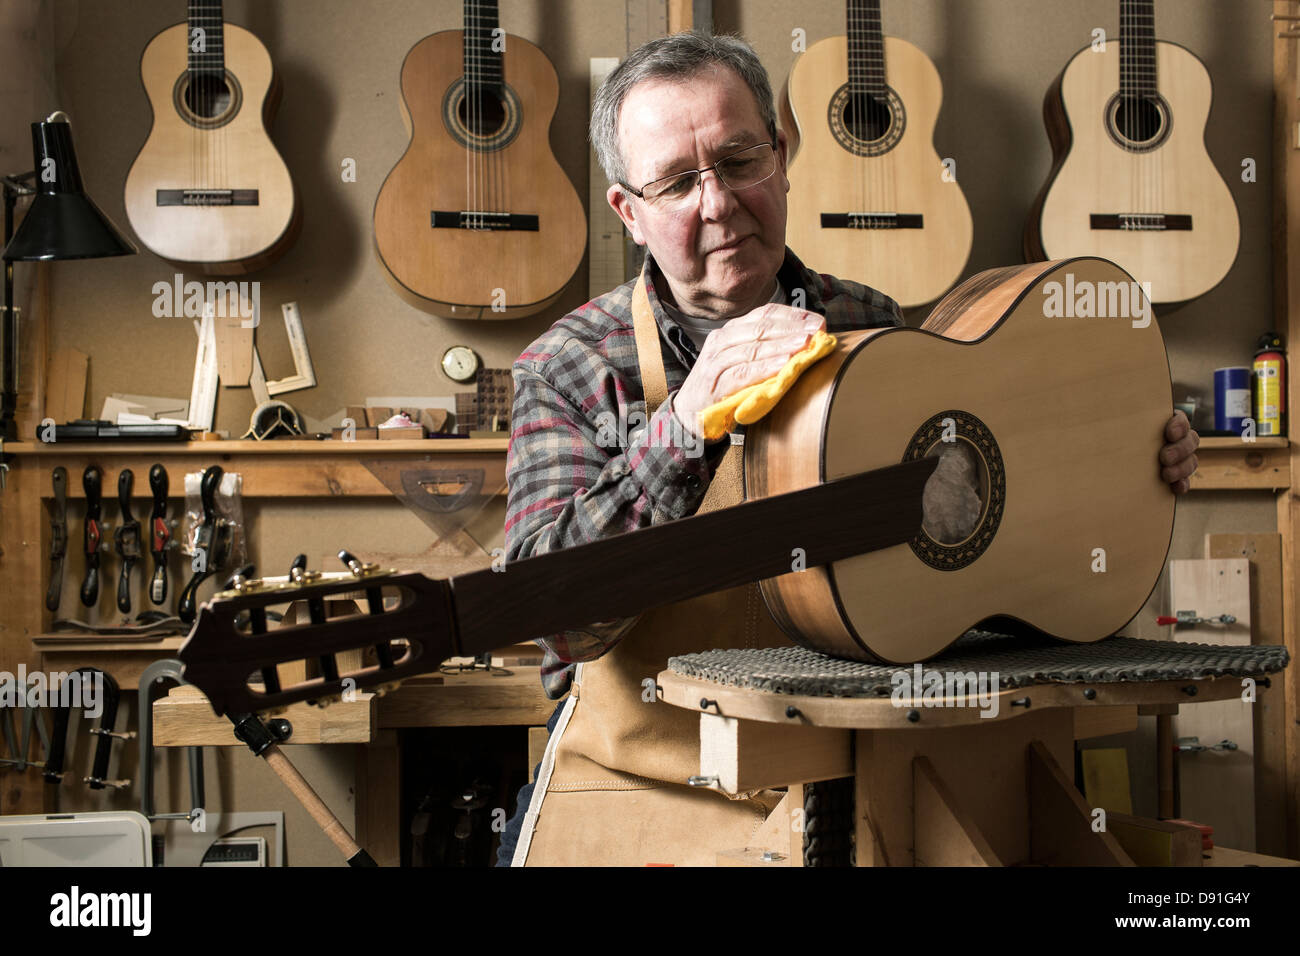 Luthier guitare acoustique finition en atelier Photo Stock